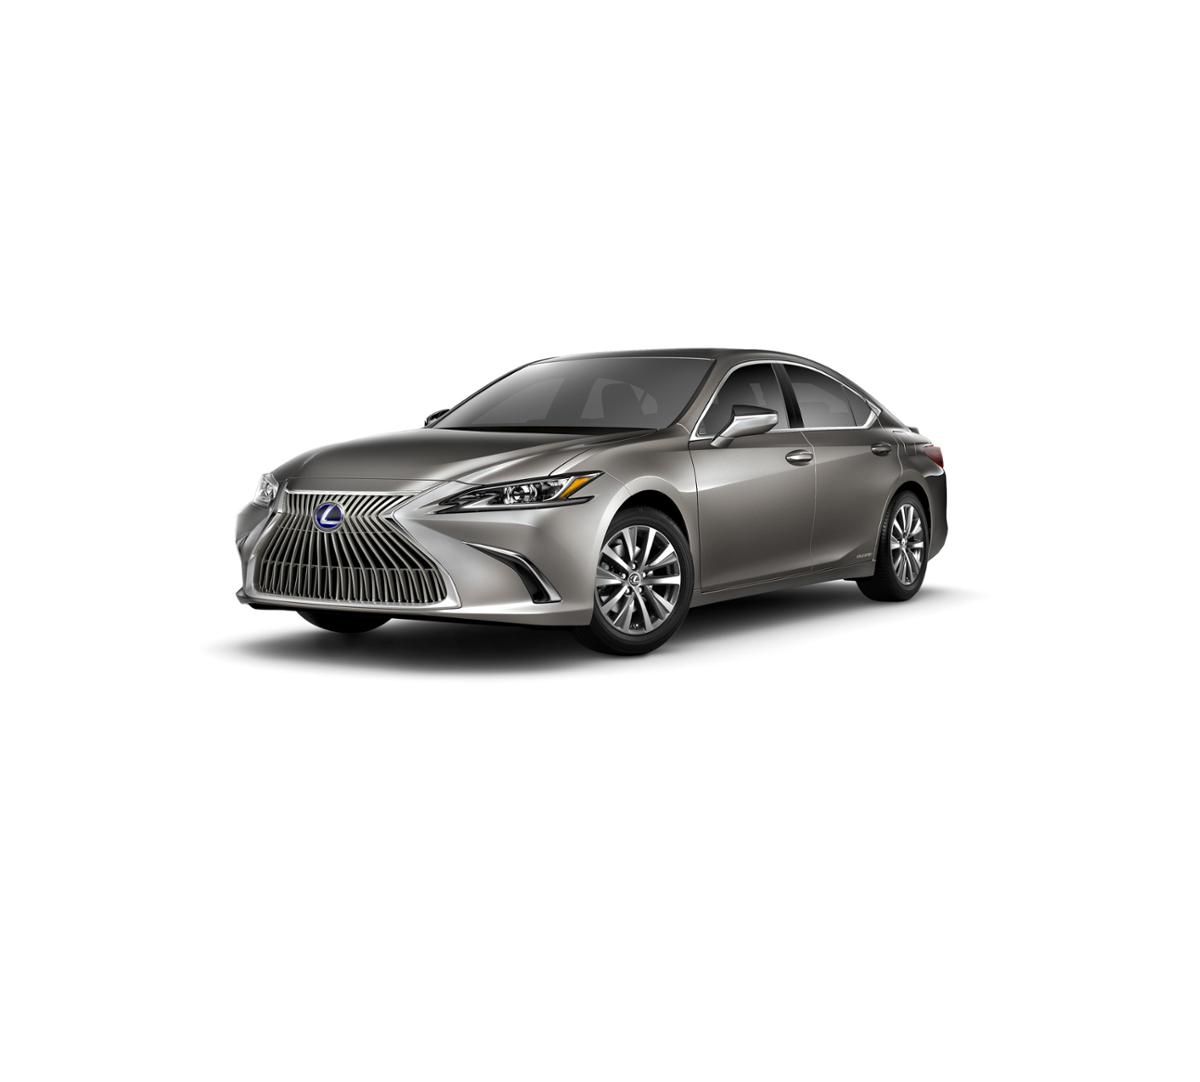 2019 Lexus ES 300h Vehicle Photo in Las Vegas, NV 89146